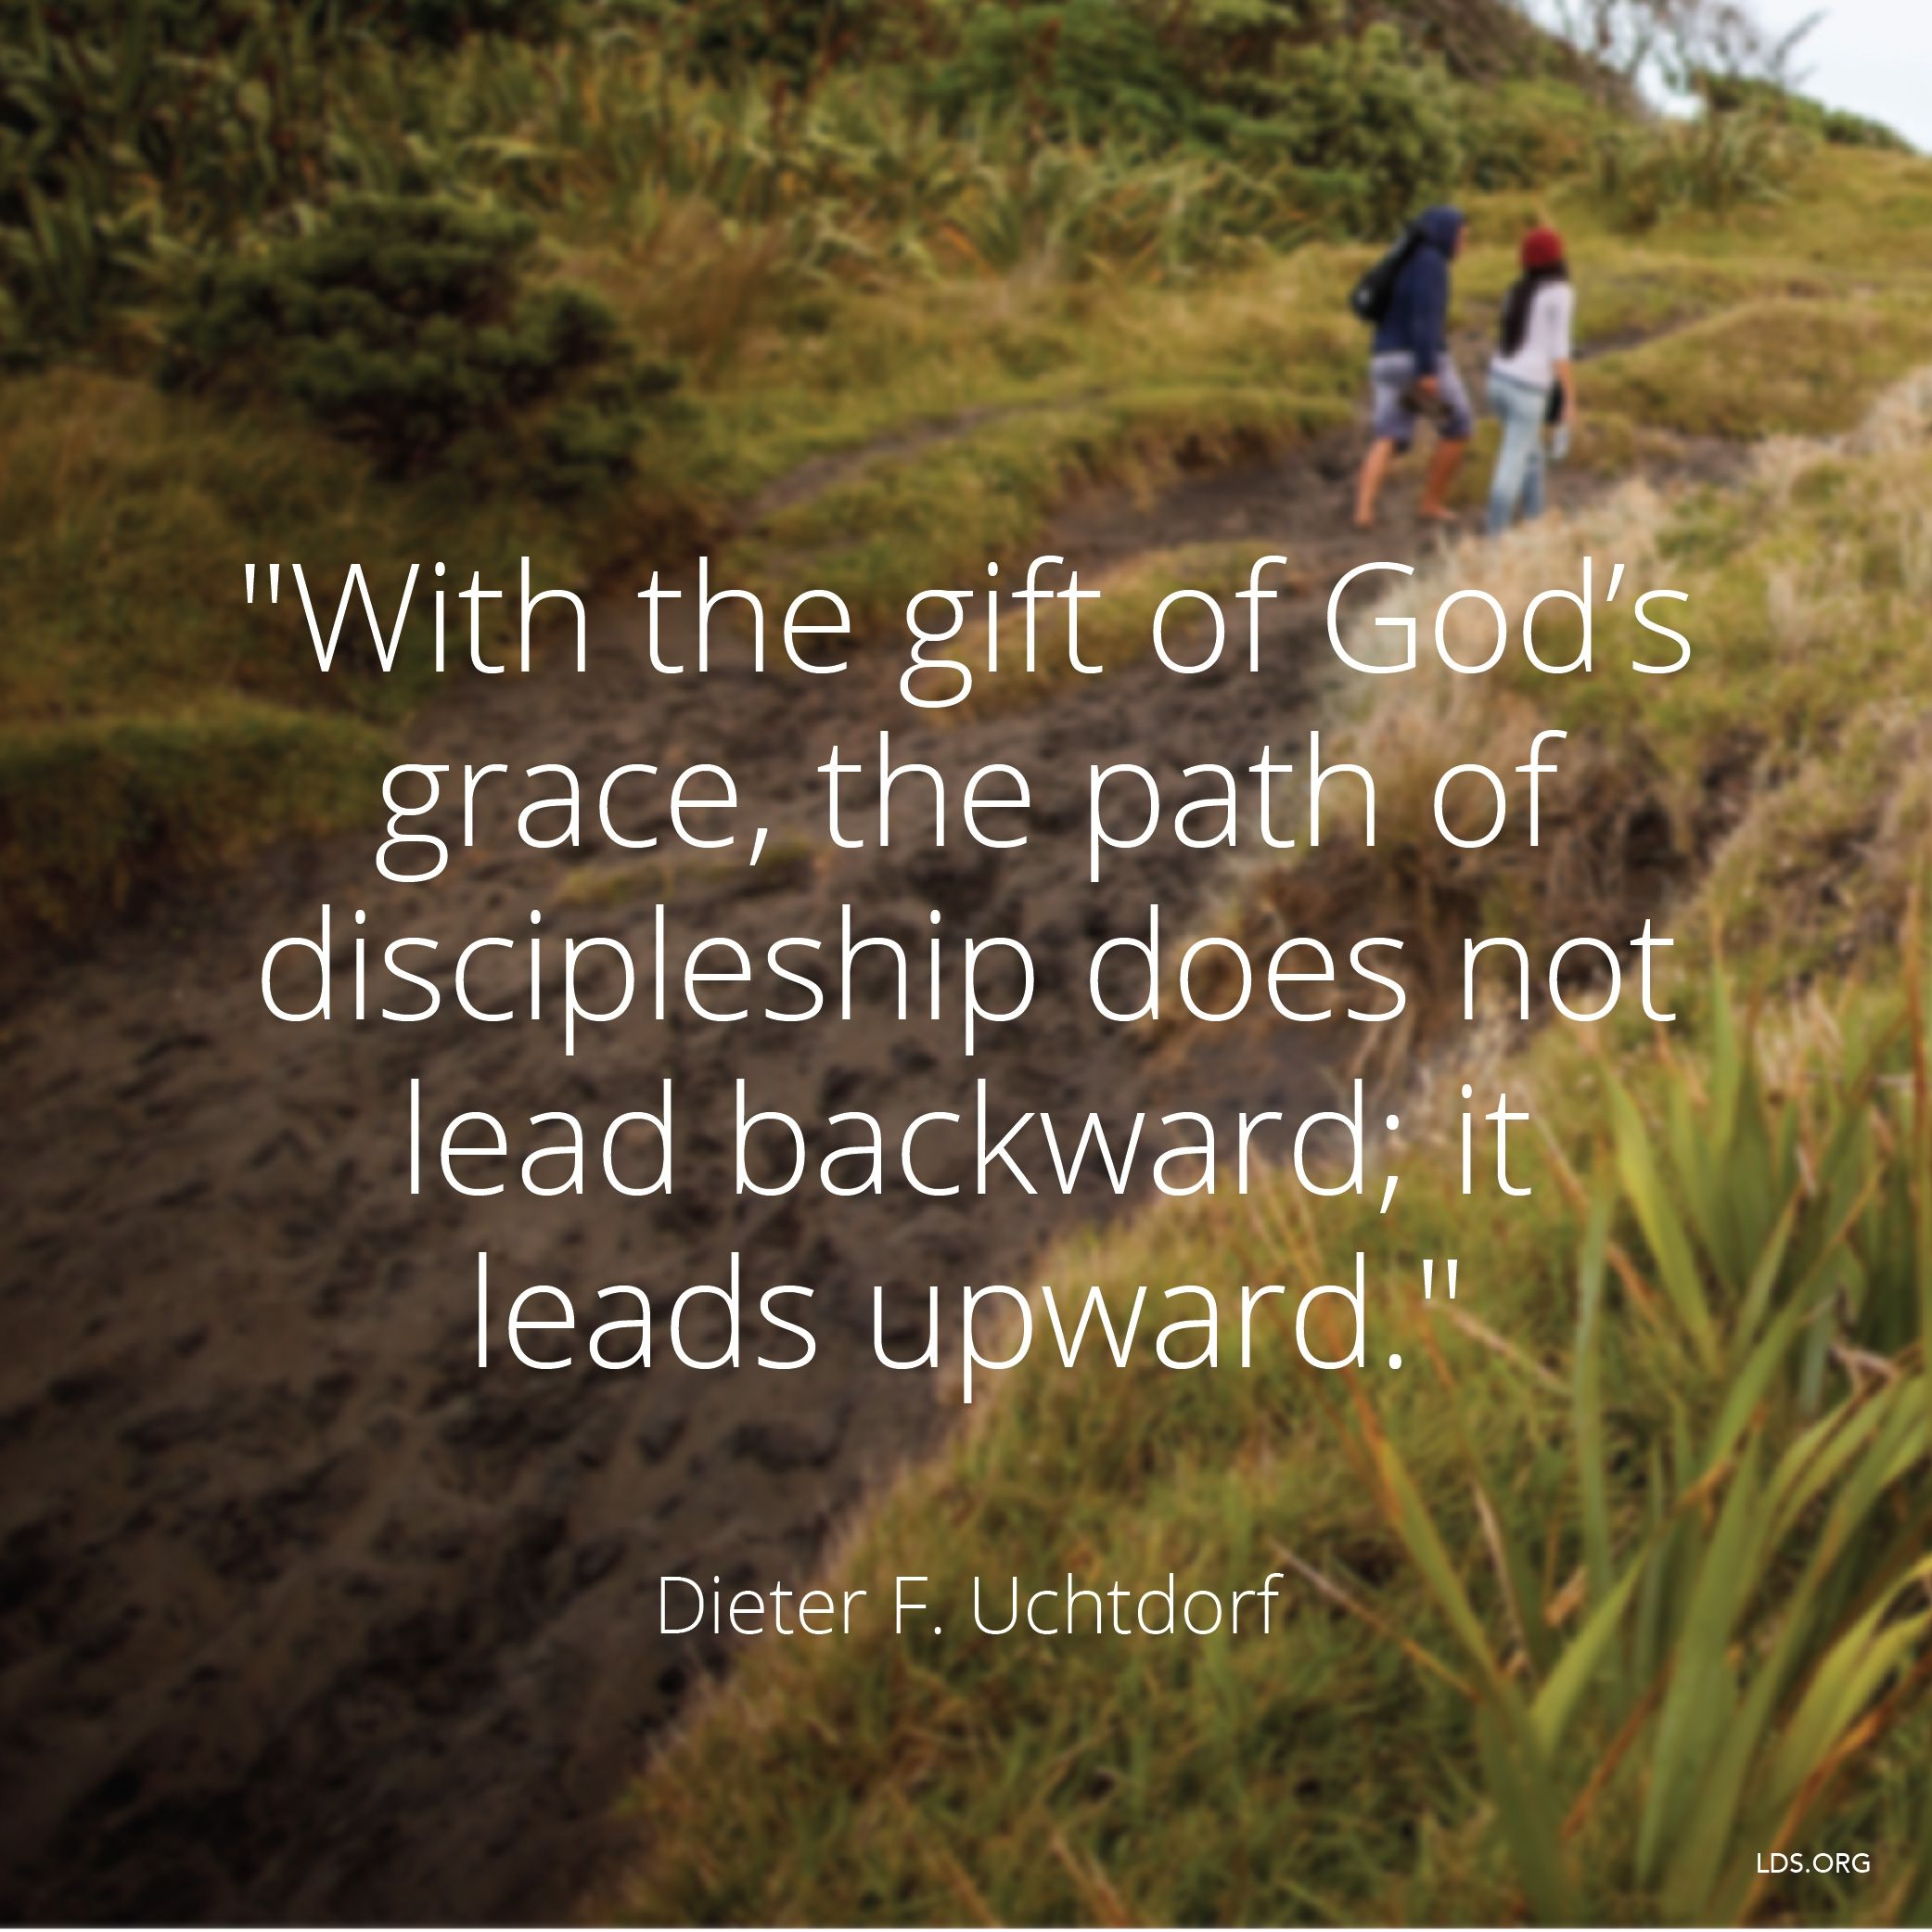 """""""With the gift of God's grace, the path of discipleship does not lead backward; it leads upward.""""—President Dieter F. Uchtdorf, """"The Gift of Grace"""""""